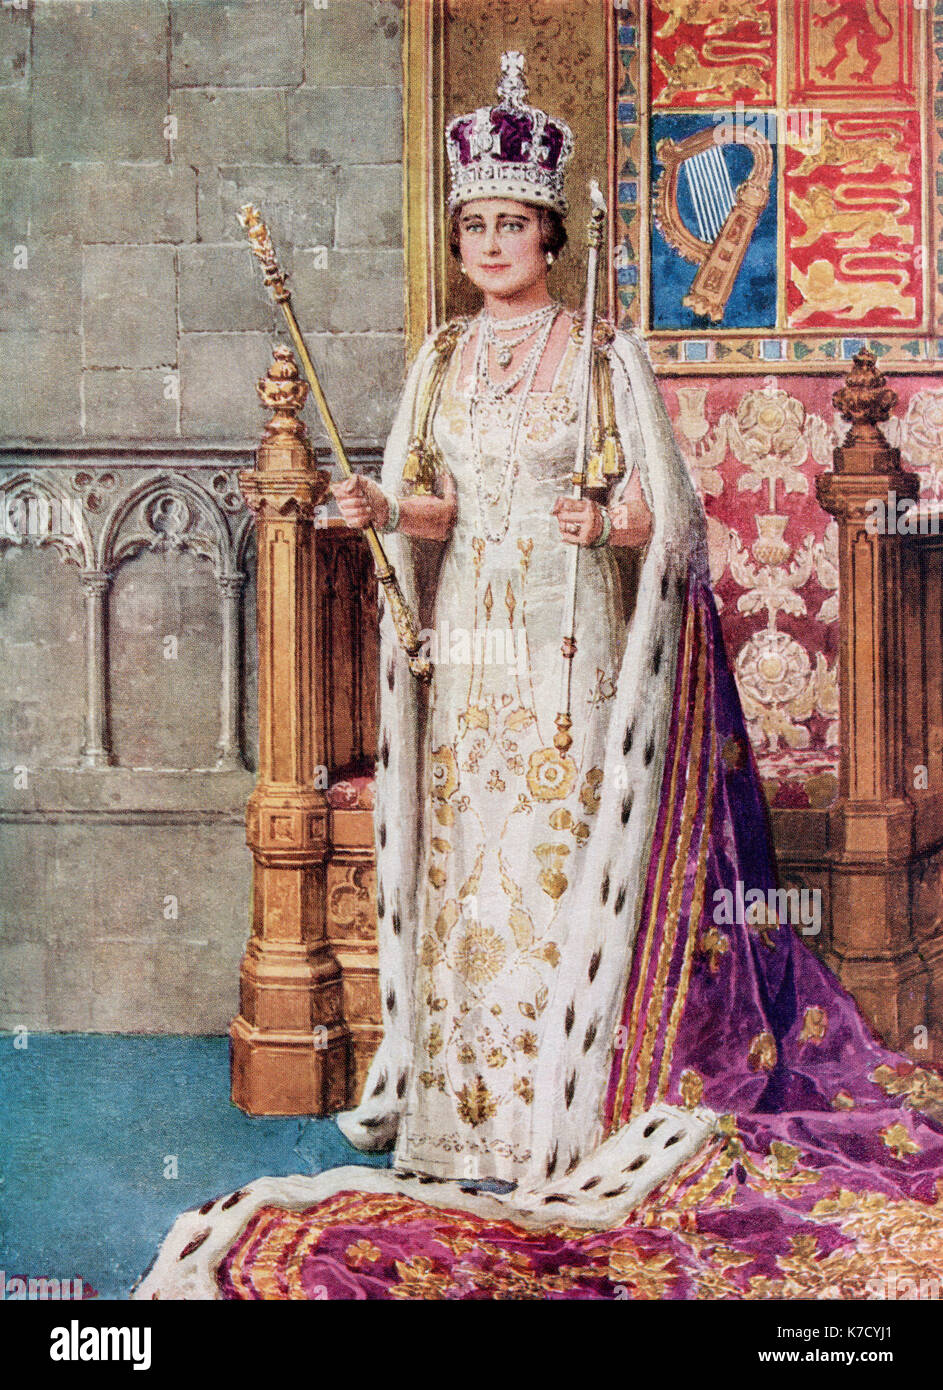 Queen Elizabeth in coronation robes, 1936.  Elizabeth Angela Marguerite Bowes-Lyon, 1900 – 2002.  Wife of King George VI and mother of Queen Elizabeth II.  From The Coronation Book of King George VI and Queen Elizabeth, published 1937. - Stock Image